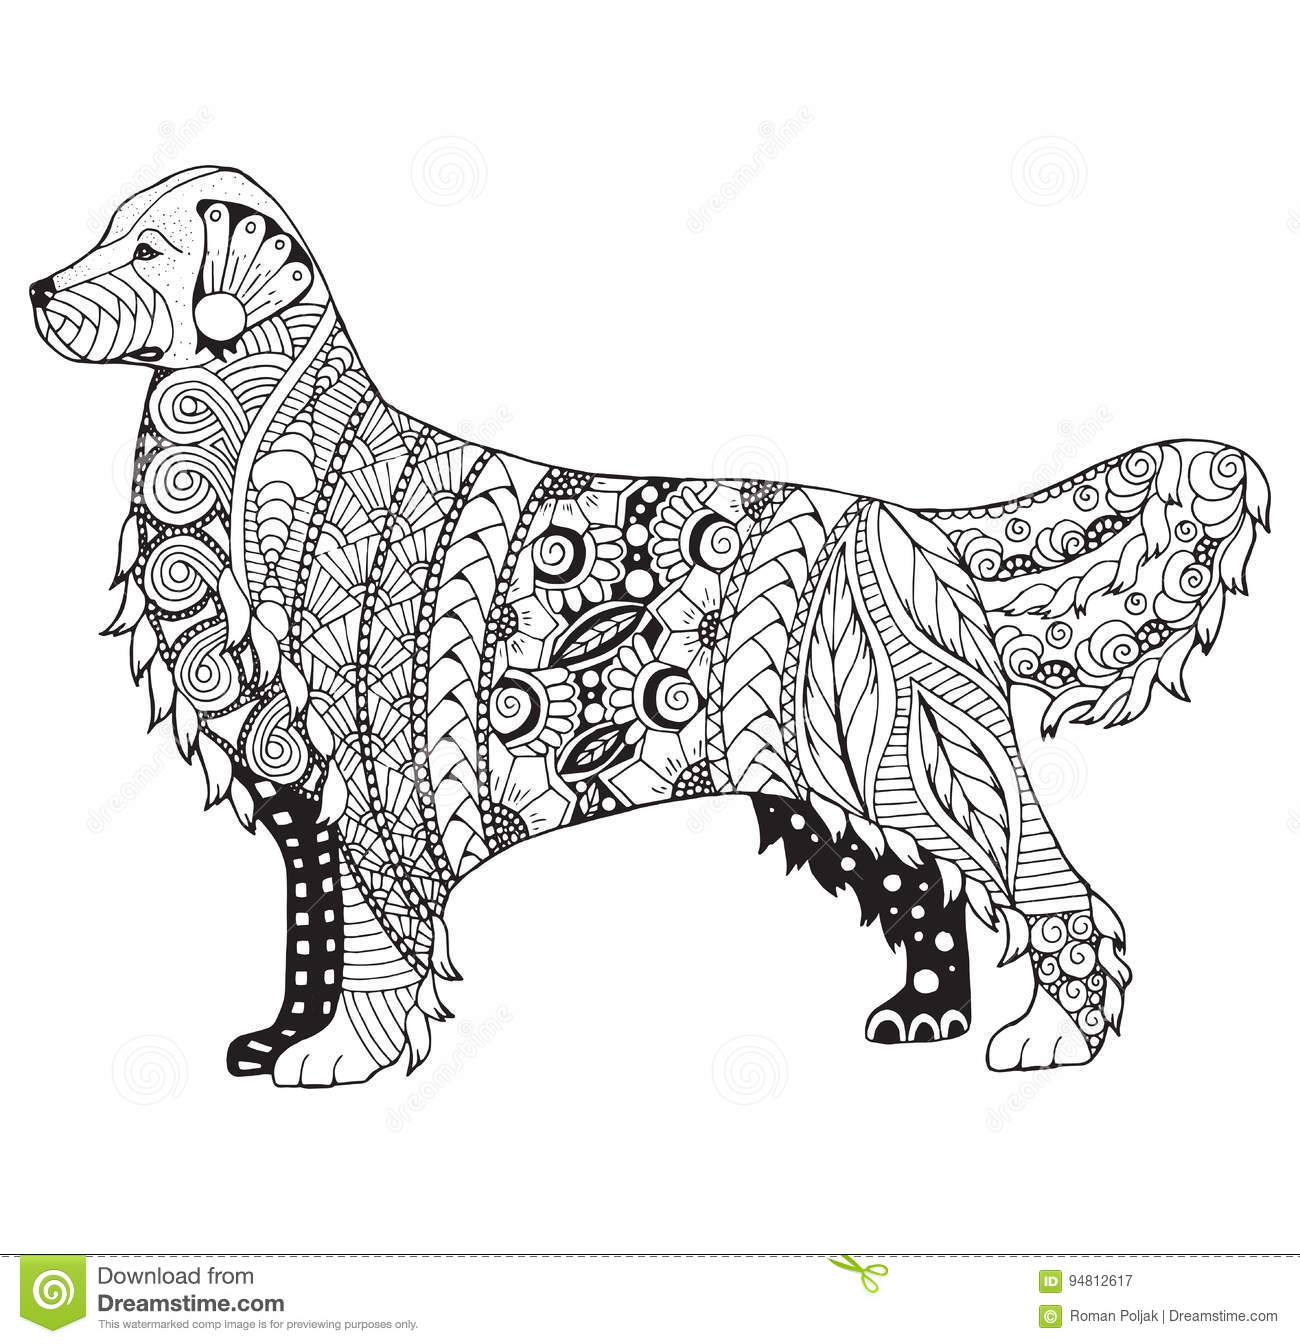 Golden Retriever Dog Zentangle Stylized Vector